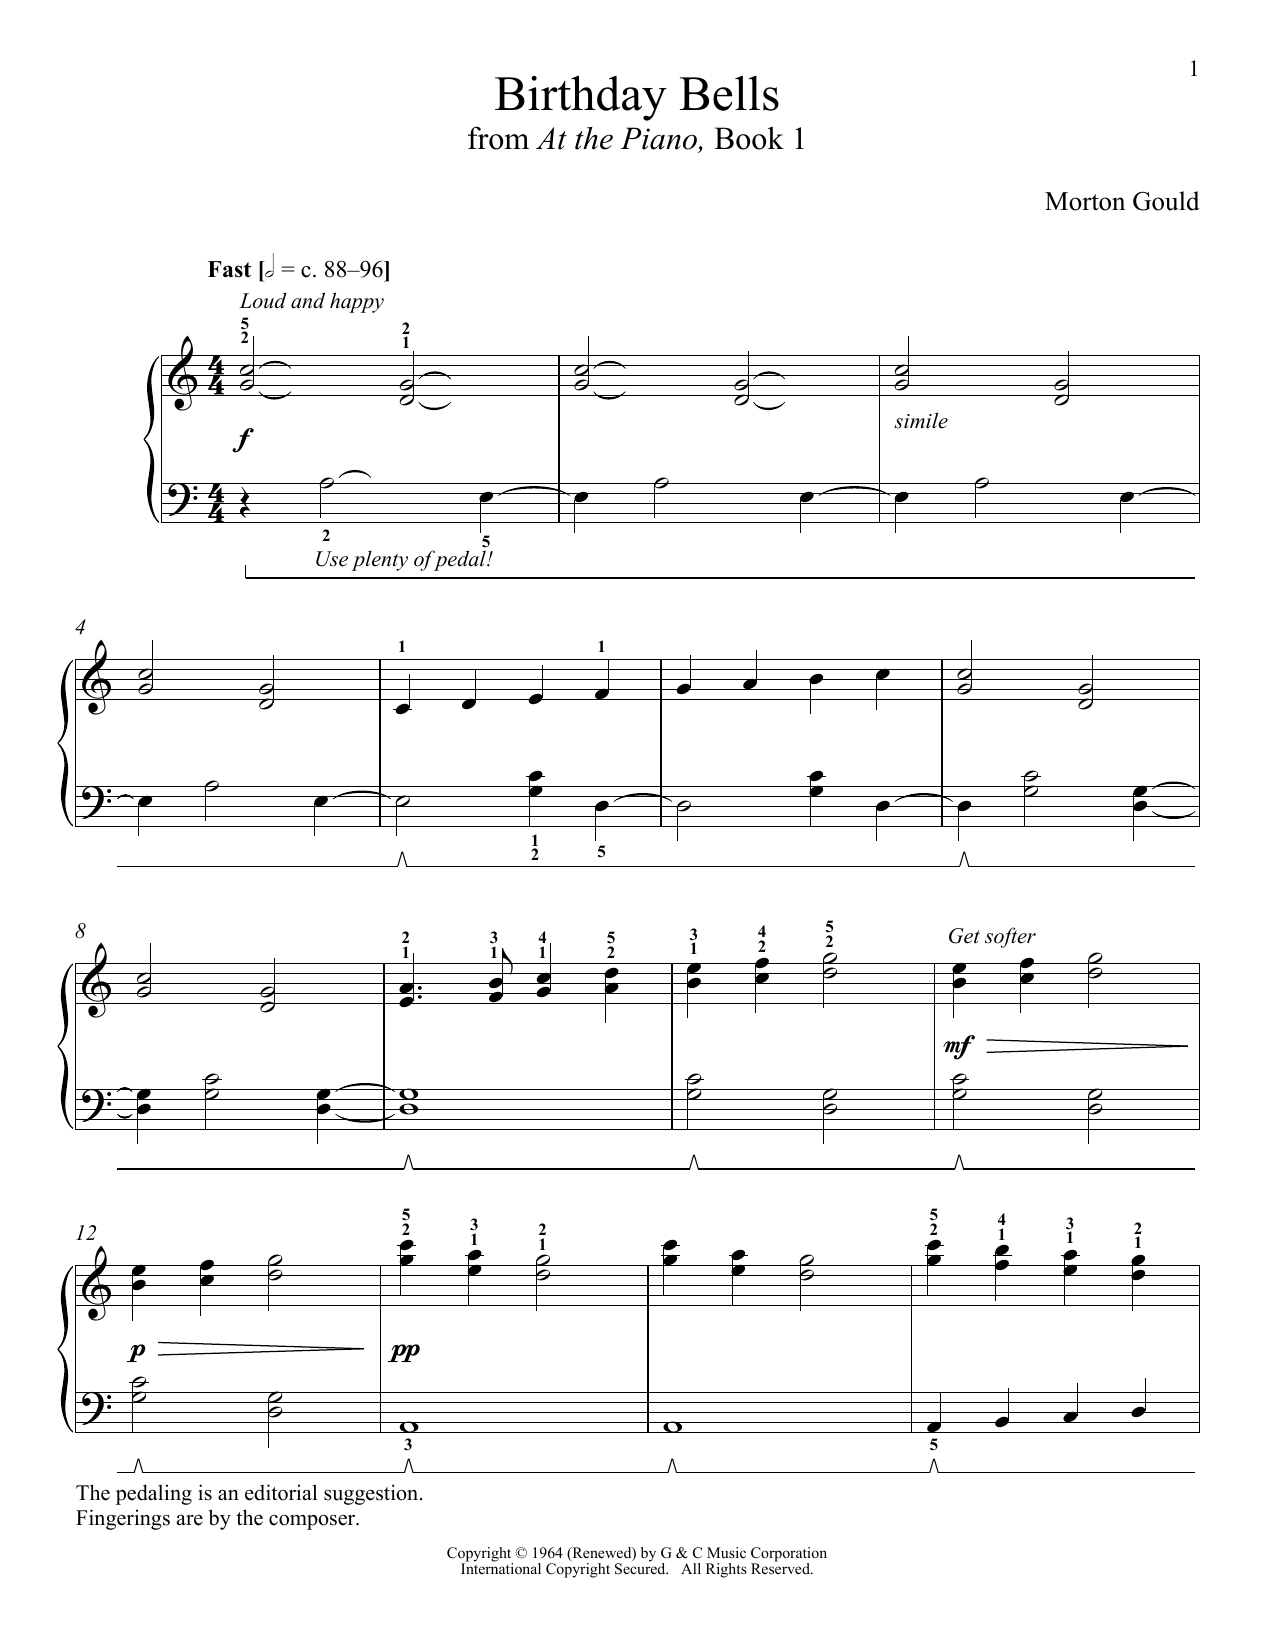 Download Morton Gould 'Birthday Bells' Digital Sheet Music Notes & Chords and start playing in minutes